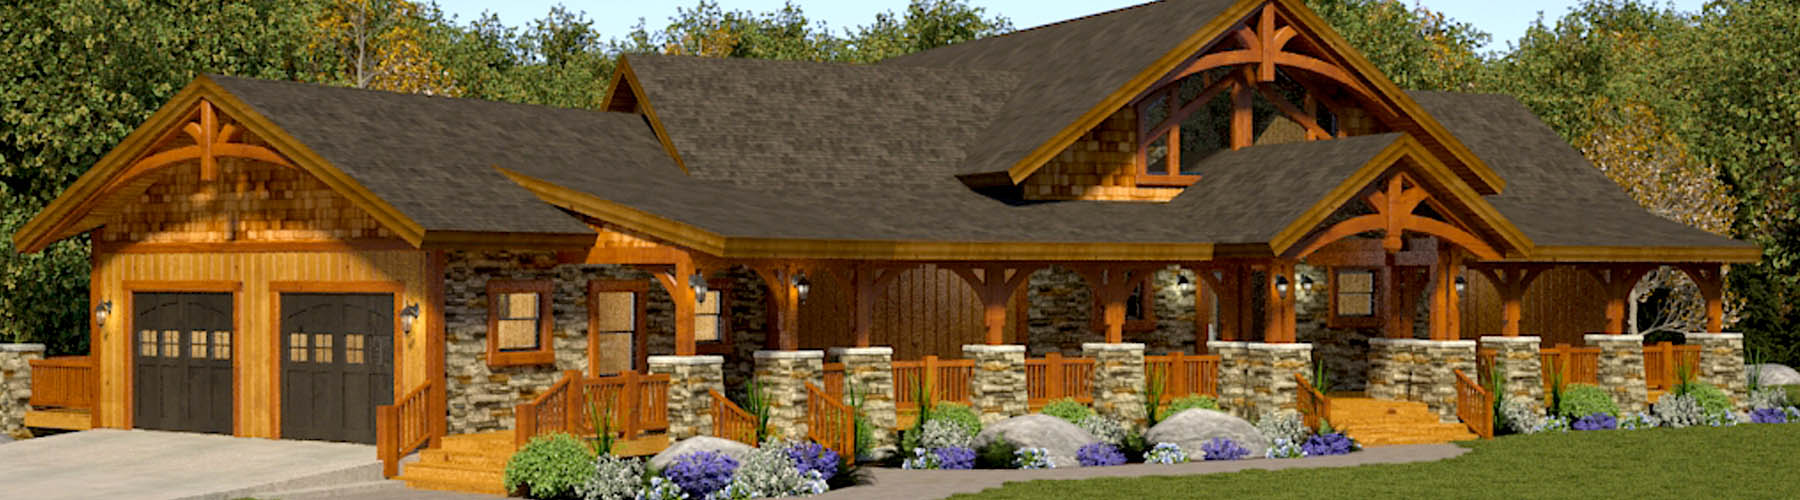 Epic Timber Ranch 2328AL-UCT Lofted Ultra Custom Timber